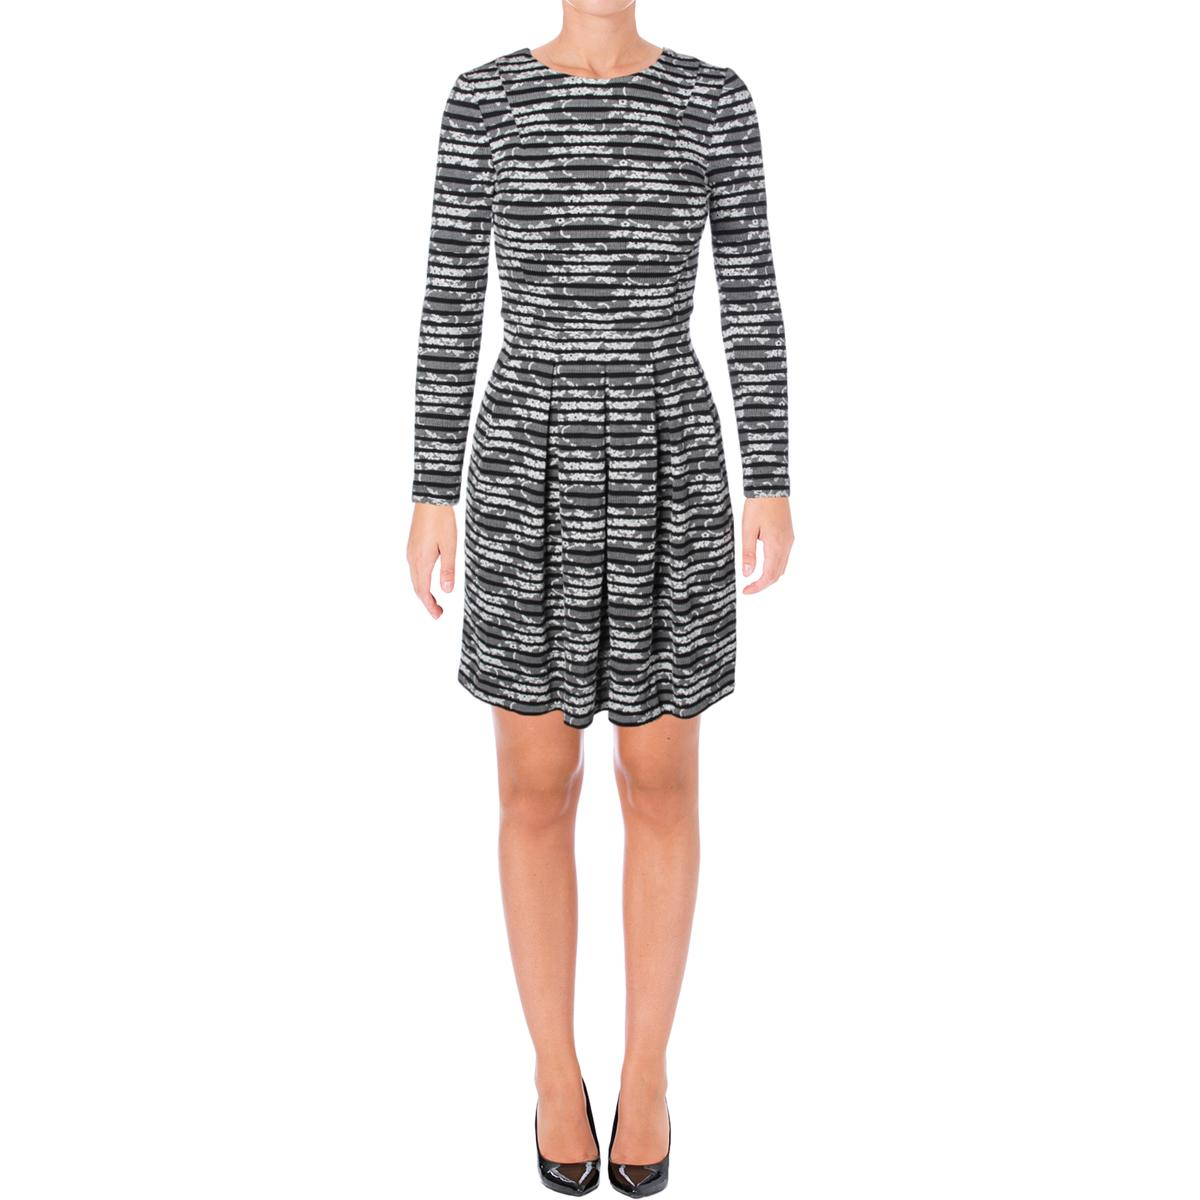 5d6615b83 Tommy Hilfiger Womens Floral Striped Long Sleeve Cocktail Dress BHFO ...